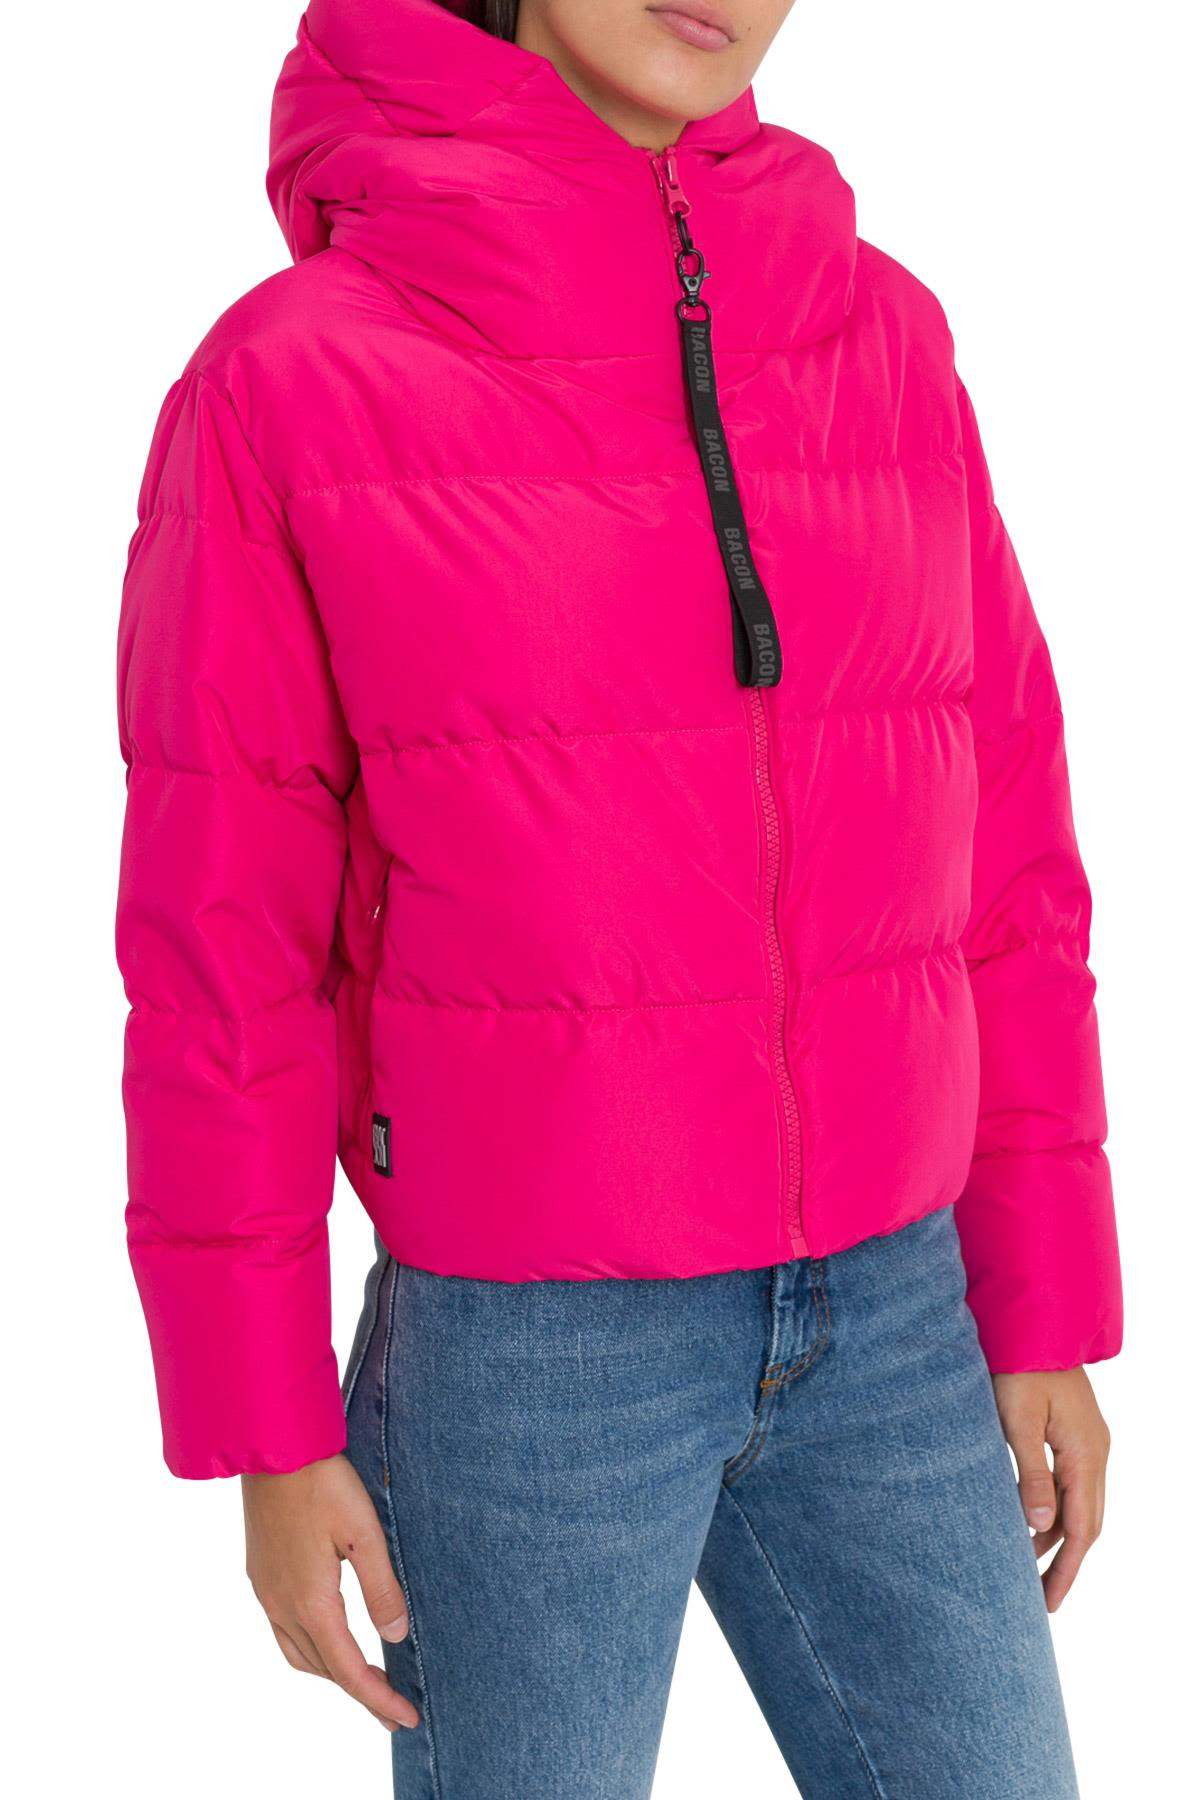 BACON CLOTHING Short Down Jacket With Hodd in Fucsia